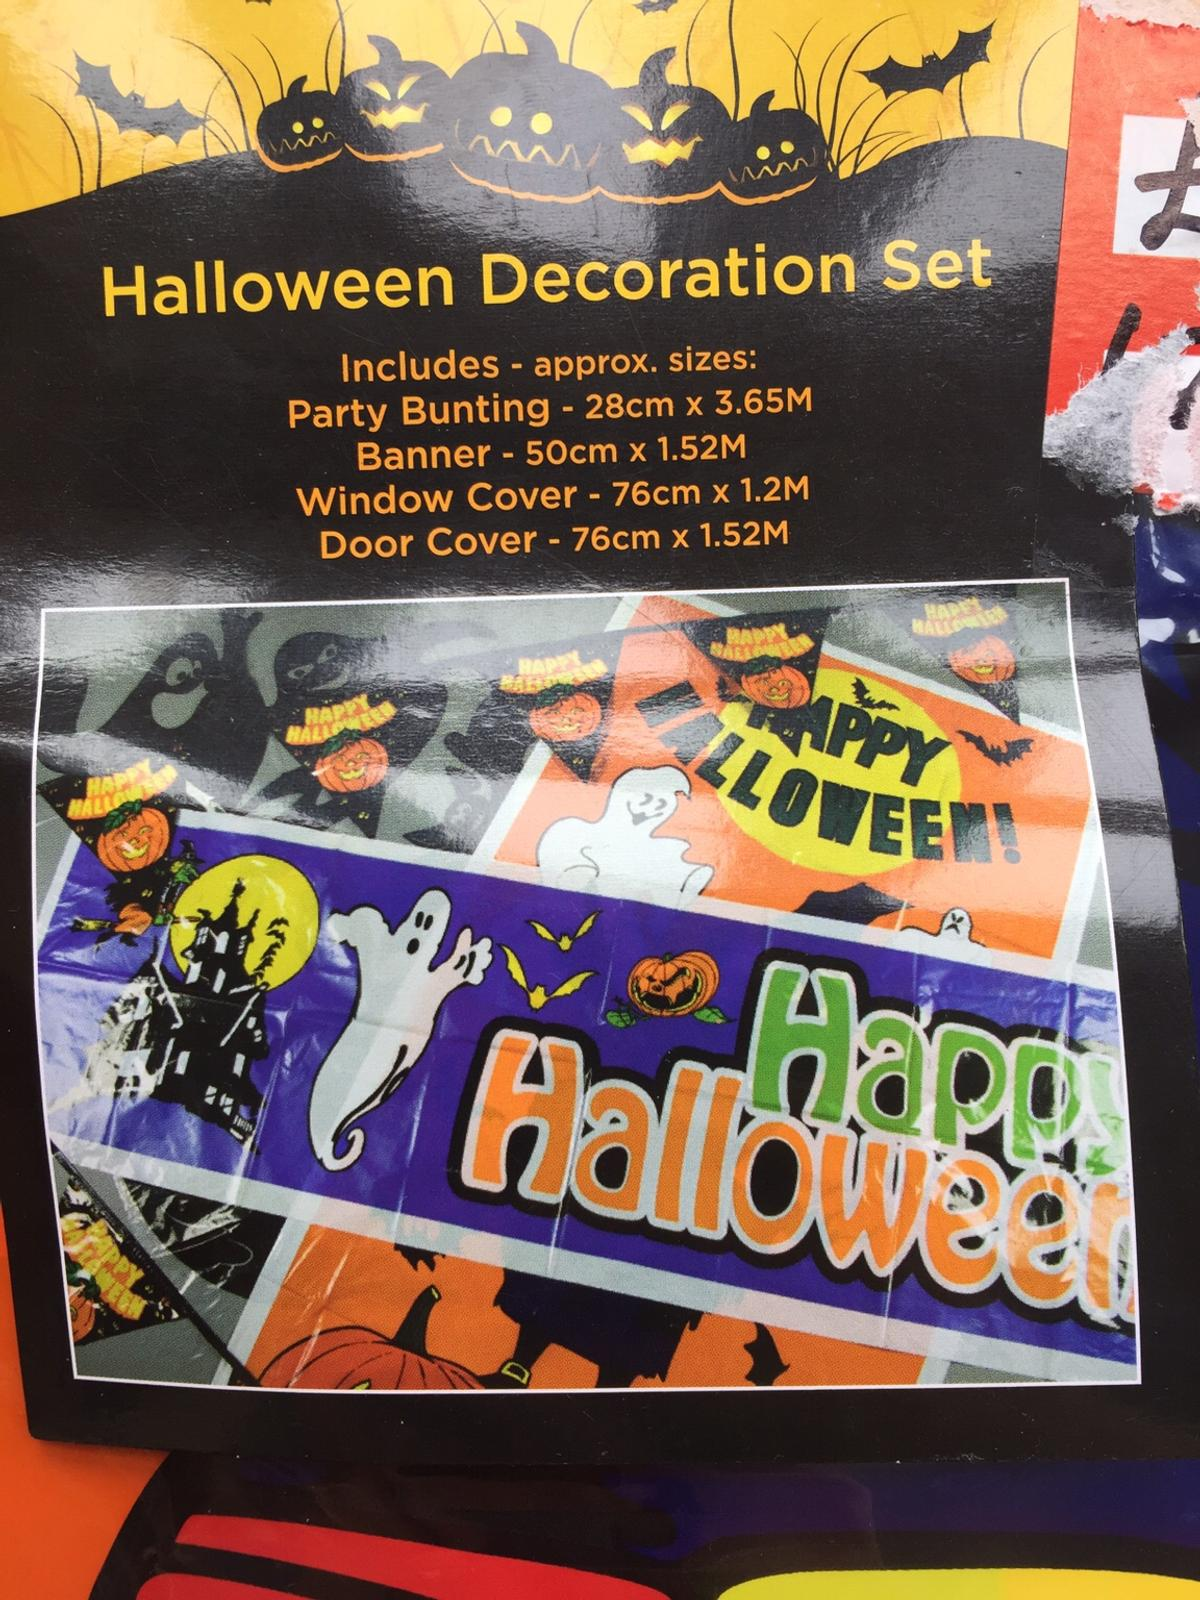 Premier Halloween Party Decorations & Plates in NG18